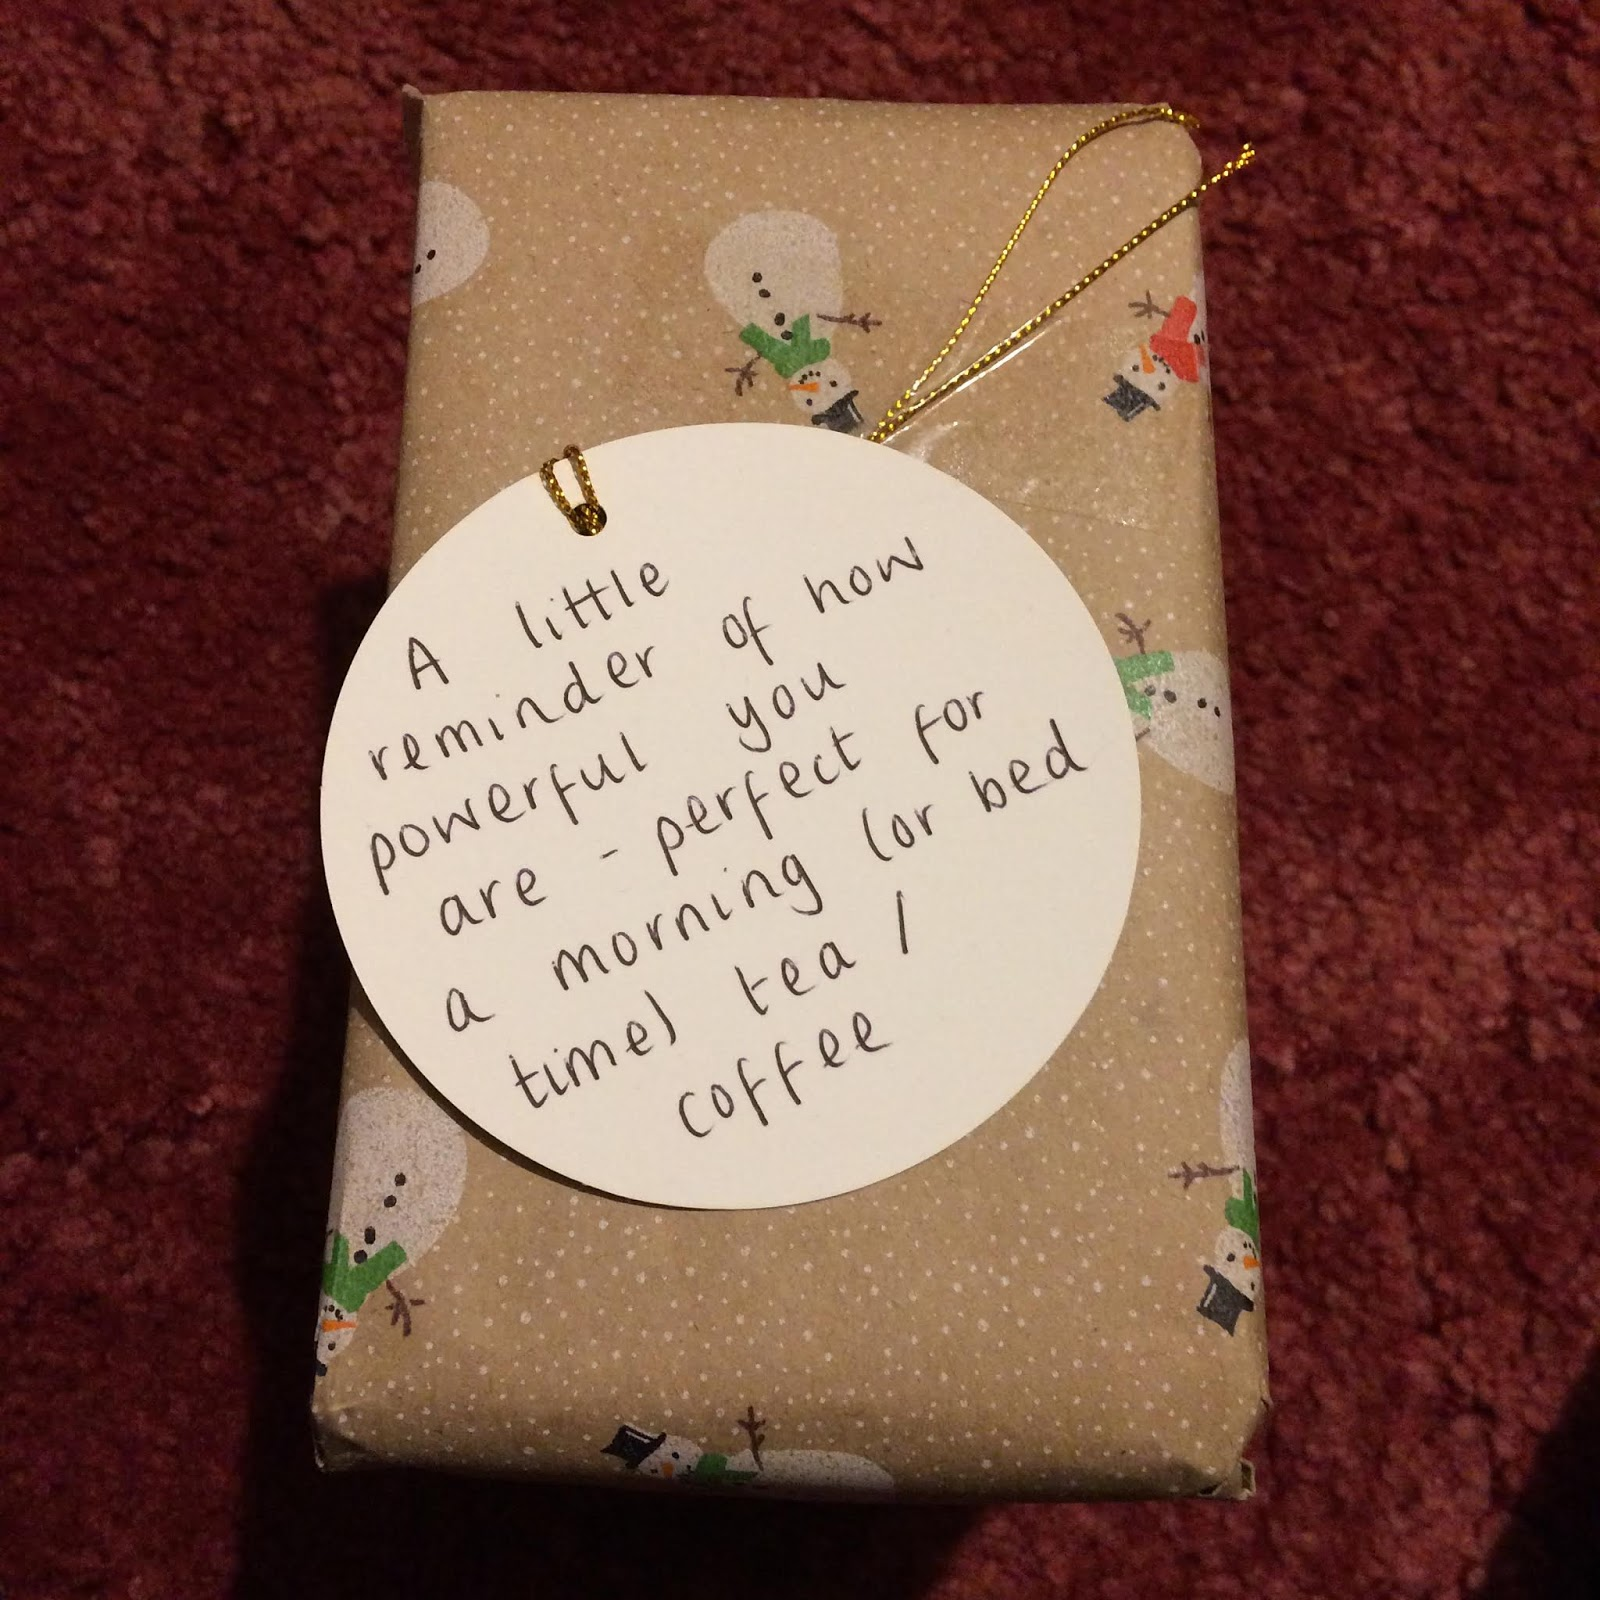 Wrapped present with tag reading, A little reminder of how powerful you are - perfect for a morning (or bed time) tea/coffee